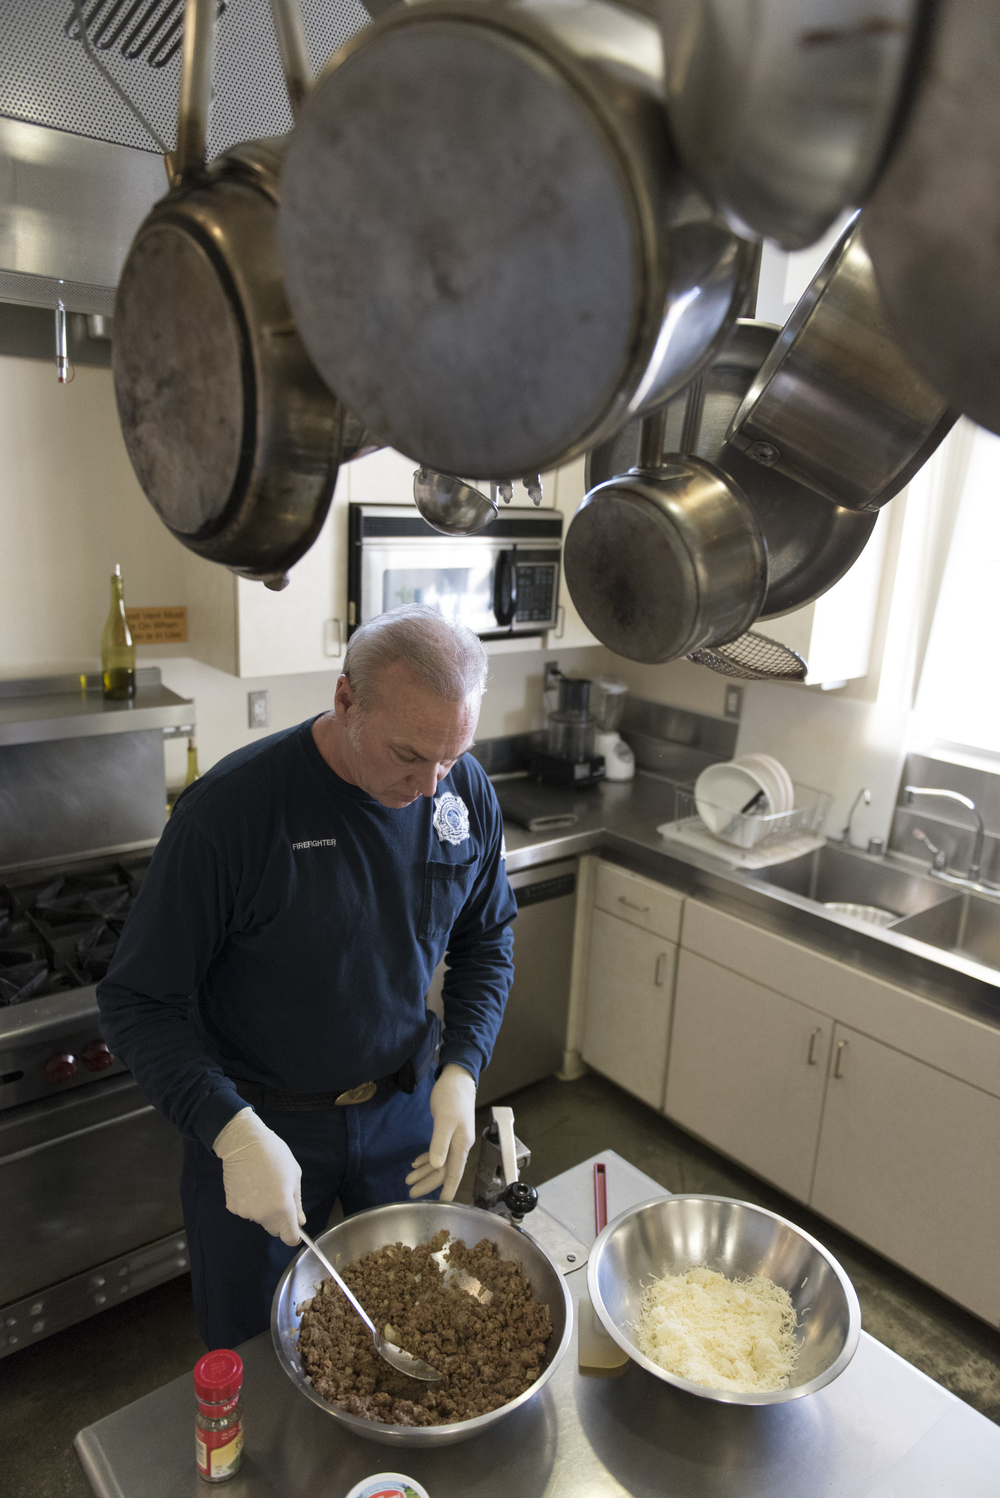 Firefighter Ted Ramey prepares dinner for the six man crew at Las Vegas Fire & Rescue's Fire Station 41 in Las Vegas Monday, Jan. 11, 2016. In two minutes Ramey will place dinner preparation on hold as the firehouse crew responds to a call. Jason Ogulnik/Las Vegas Review-Journal